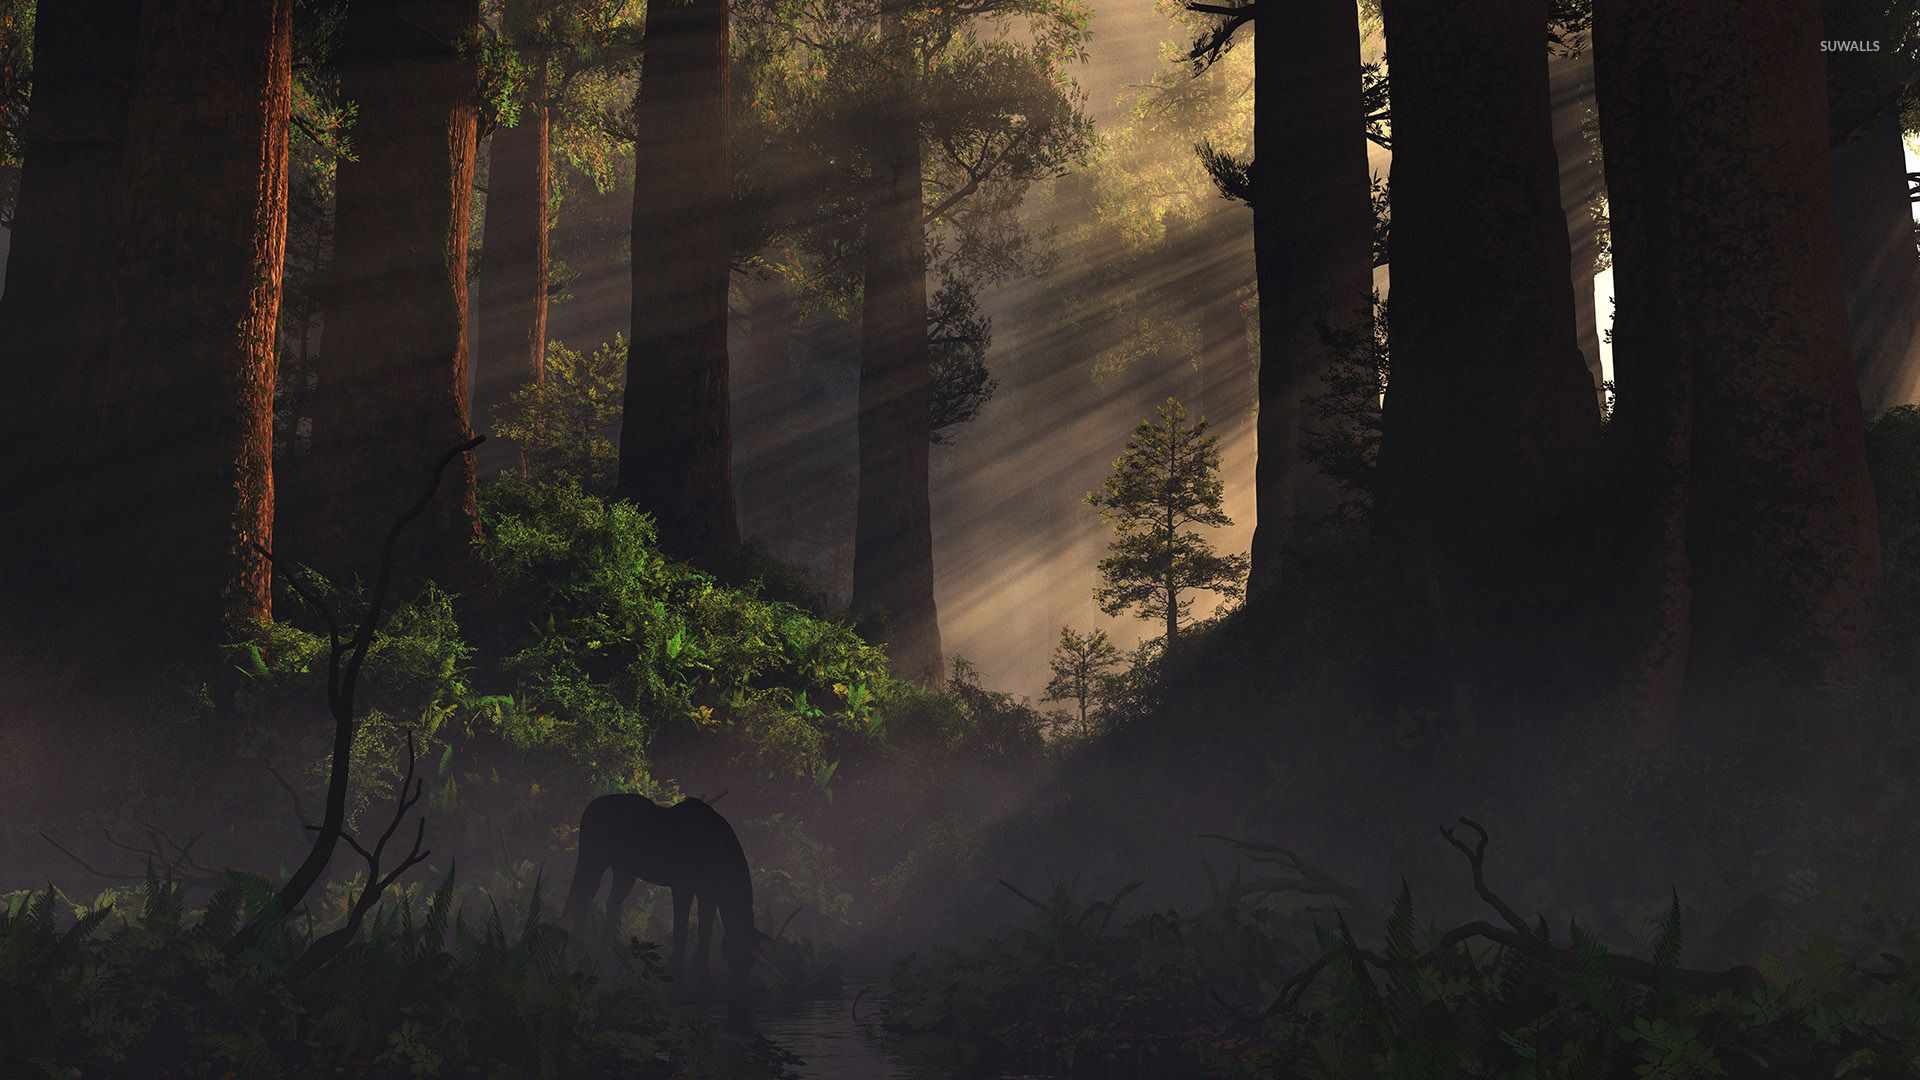 Horse In The Forest Wallpaper Forest Wallpaper Art Horse Wallpaper Wallpaper fantasy horse night forest art